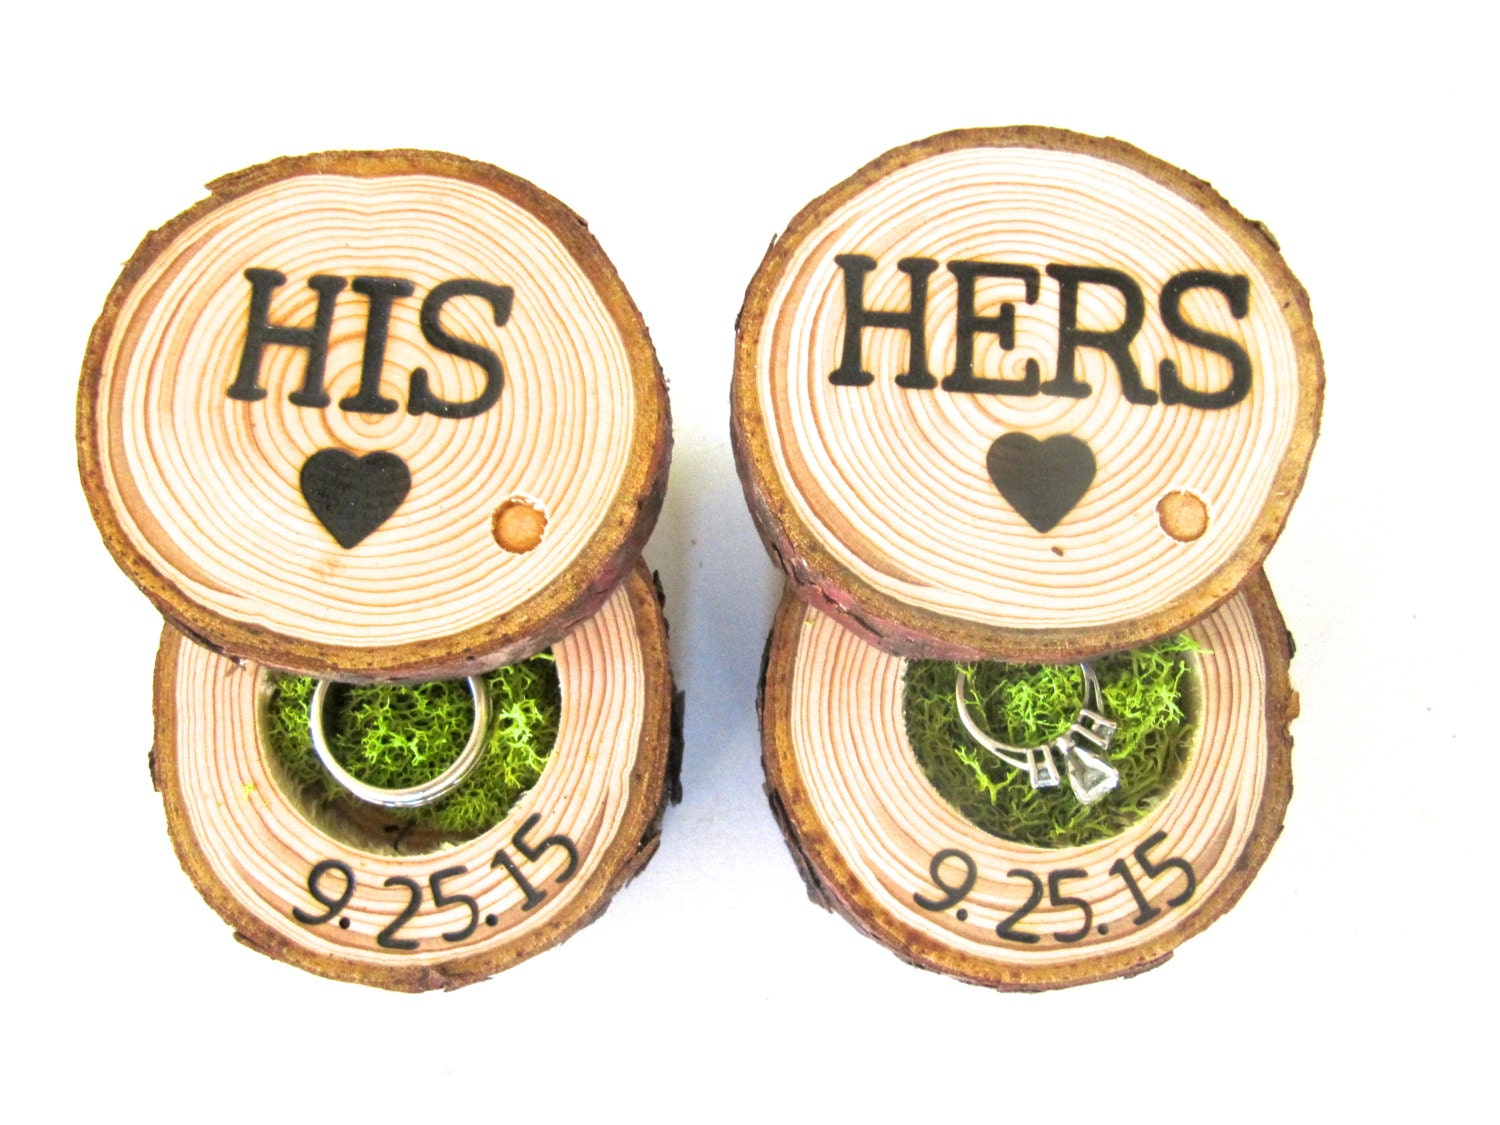 ring bearer box his and hers wedding ring box wood ring With his and hers wedding ring box